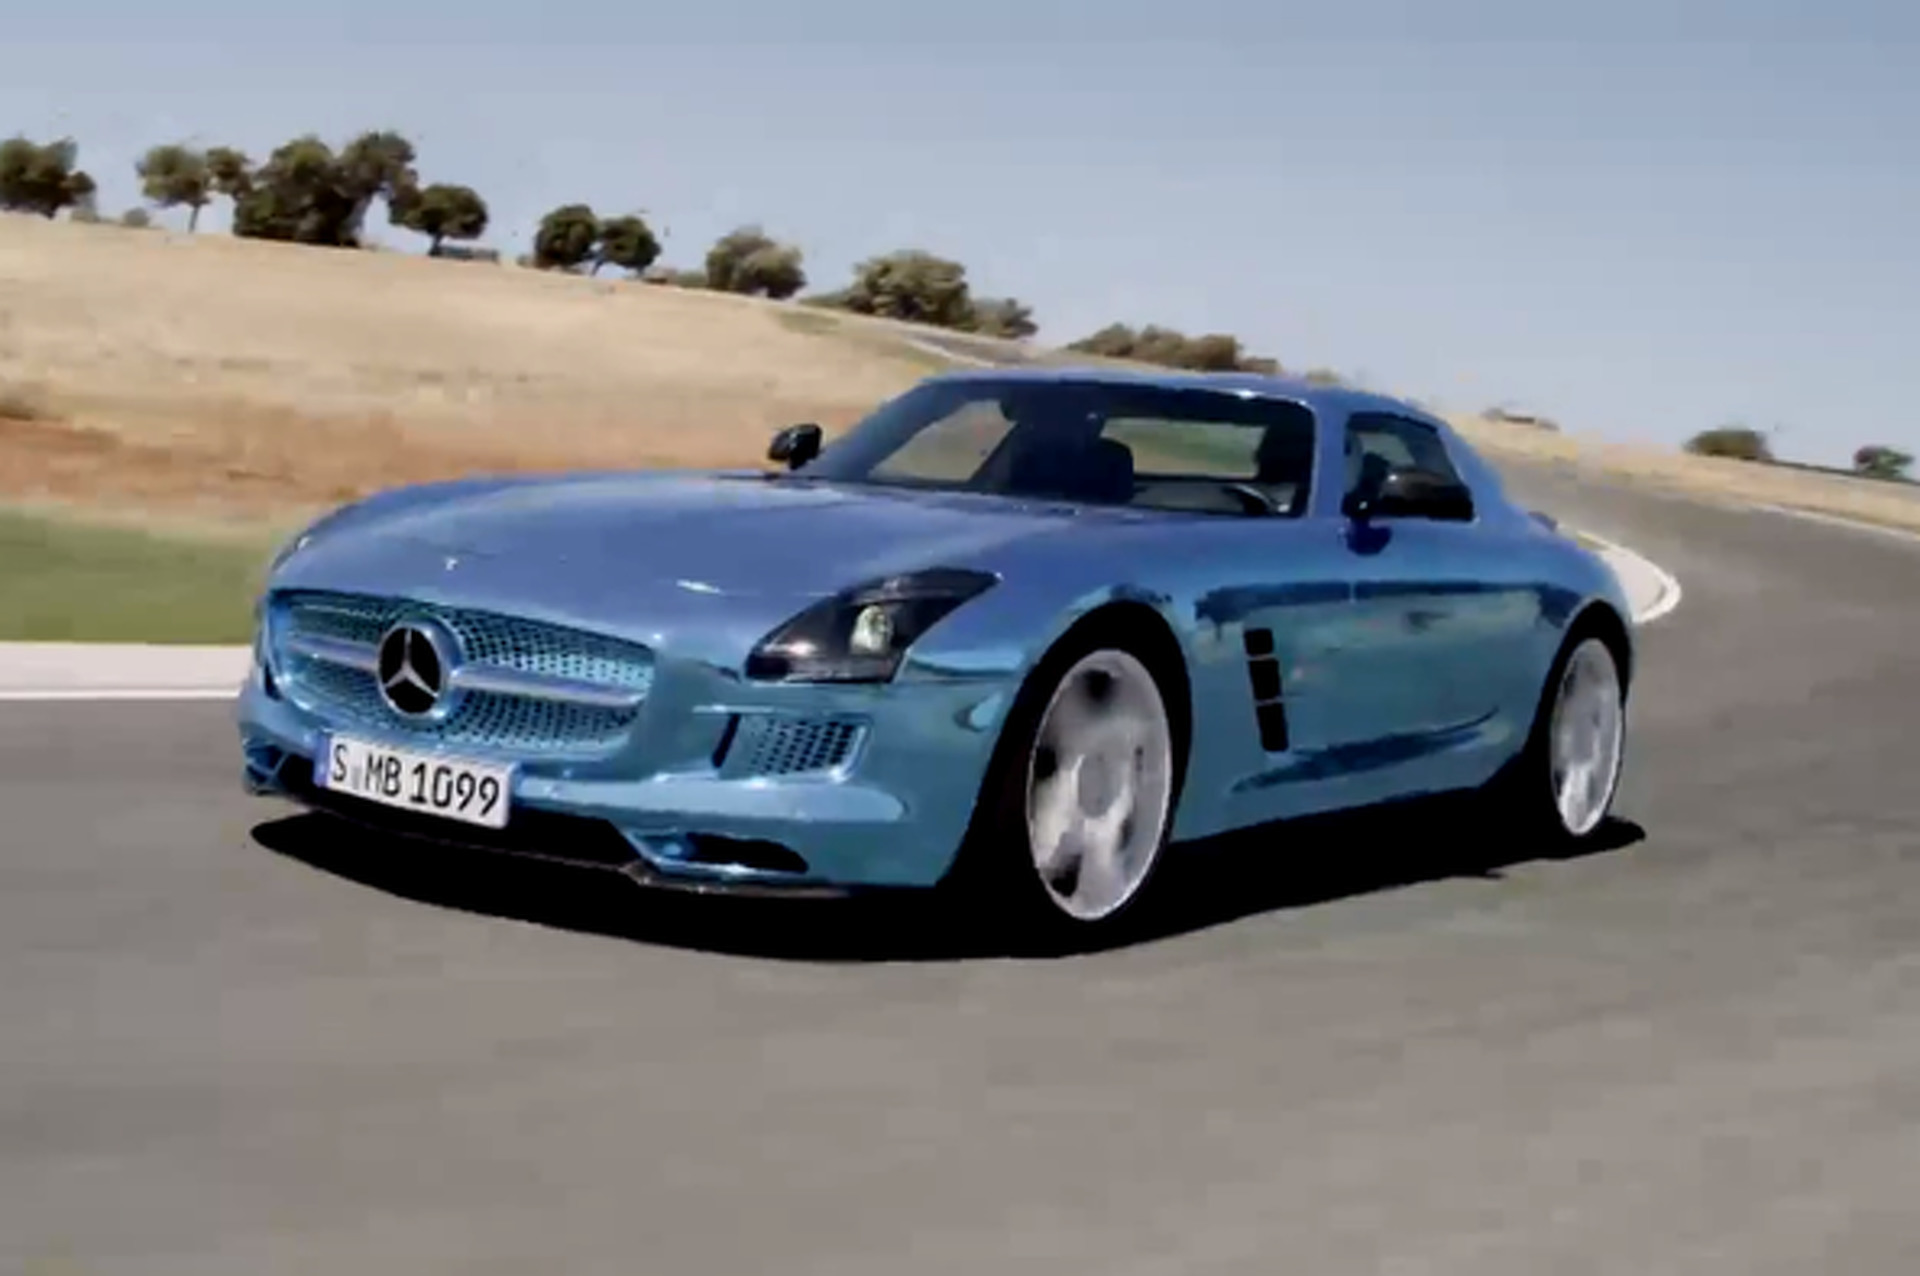 Video: Mercedes SLS AMG Electric Drive Runs Laps of Ascari Race Course